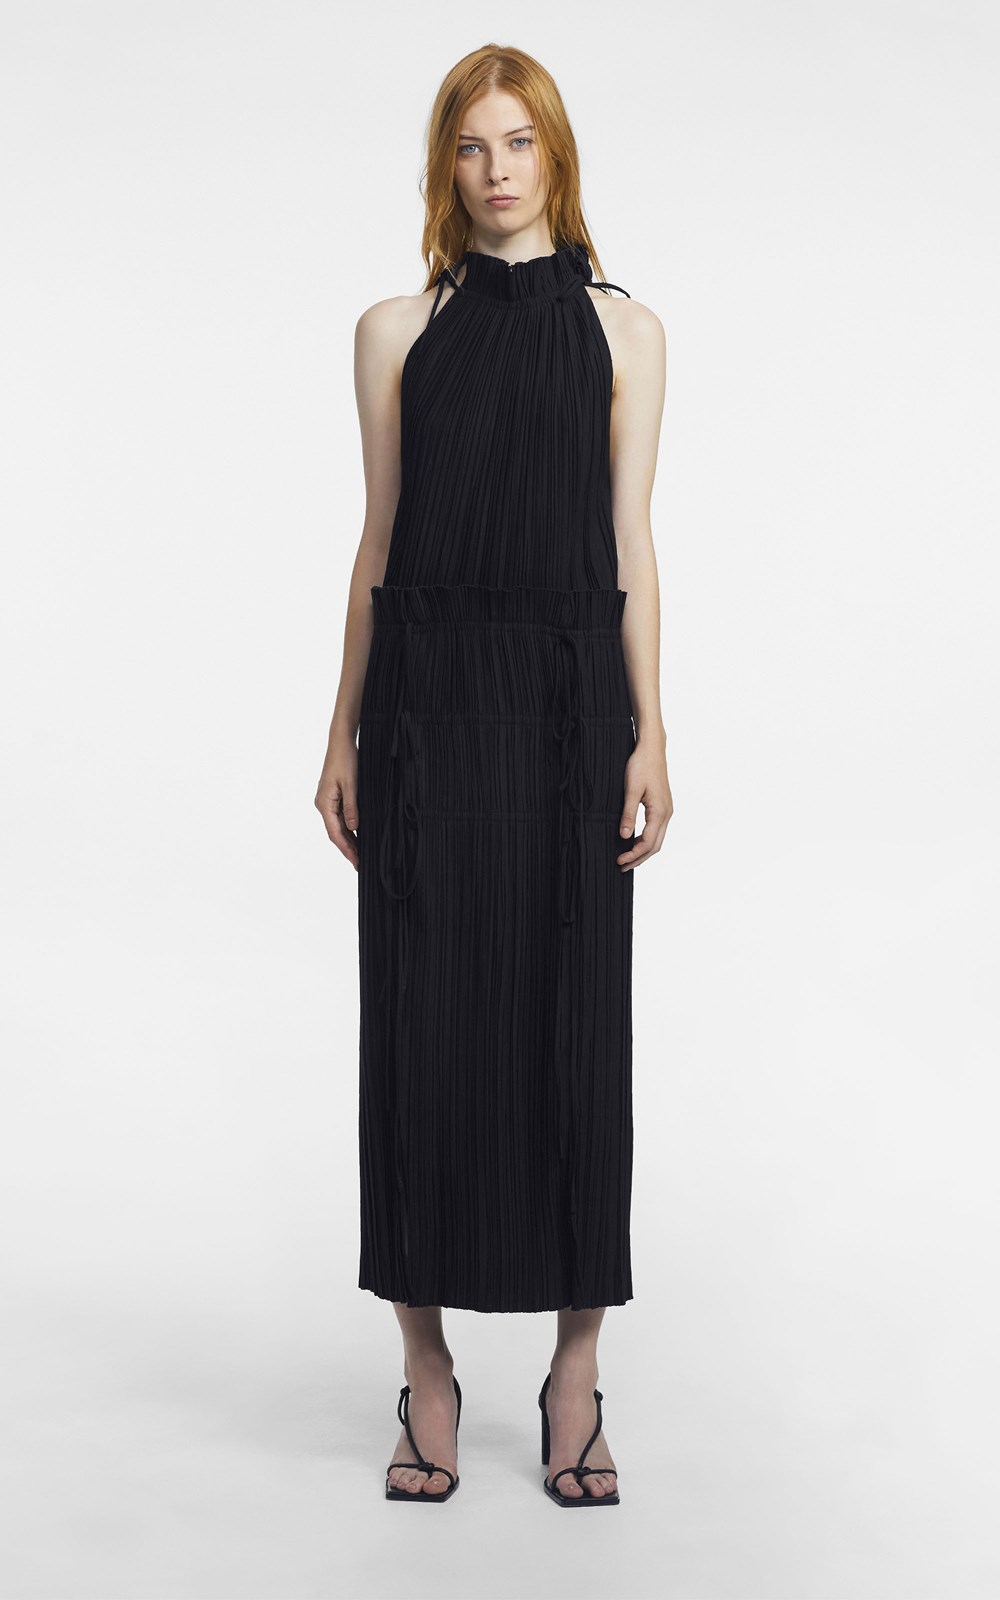 Dresses | CHANNEL PLEAT DRESS